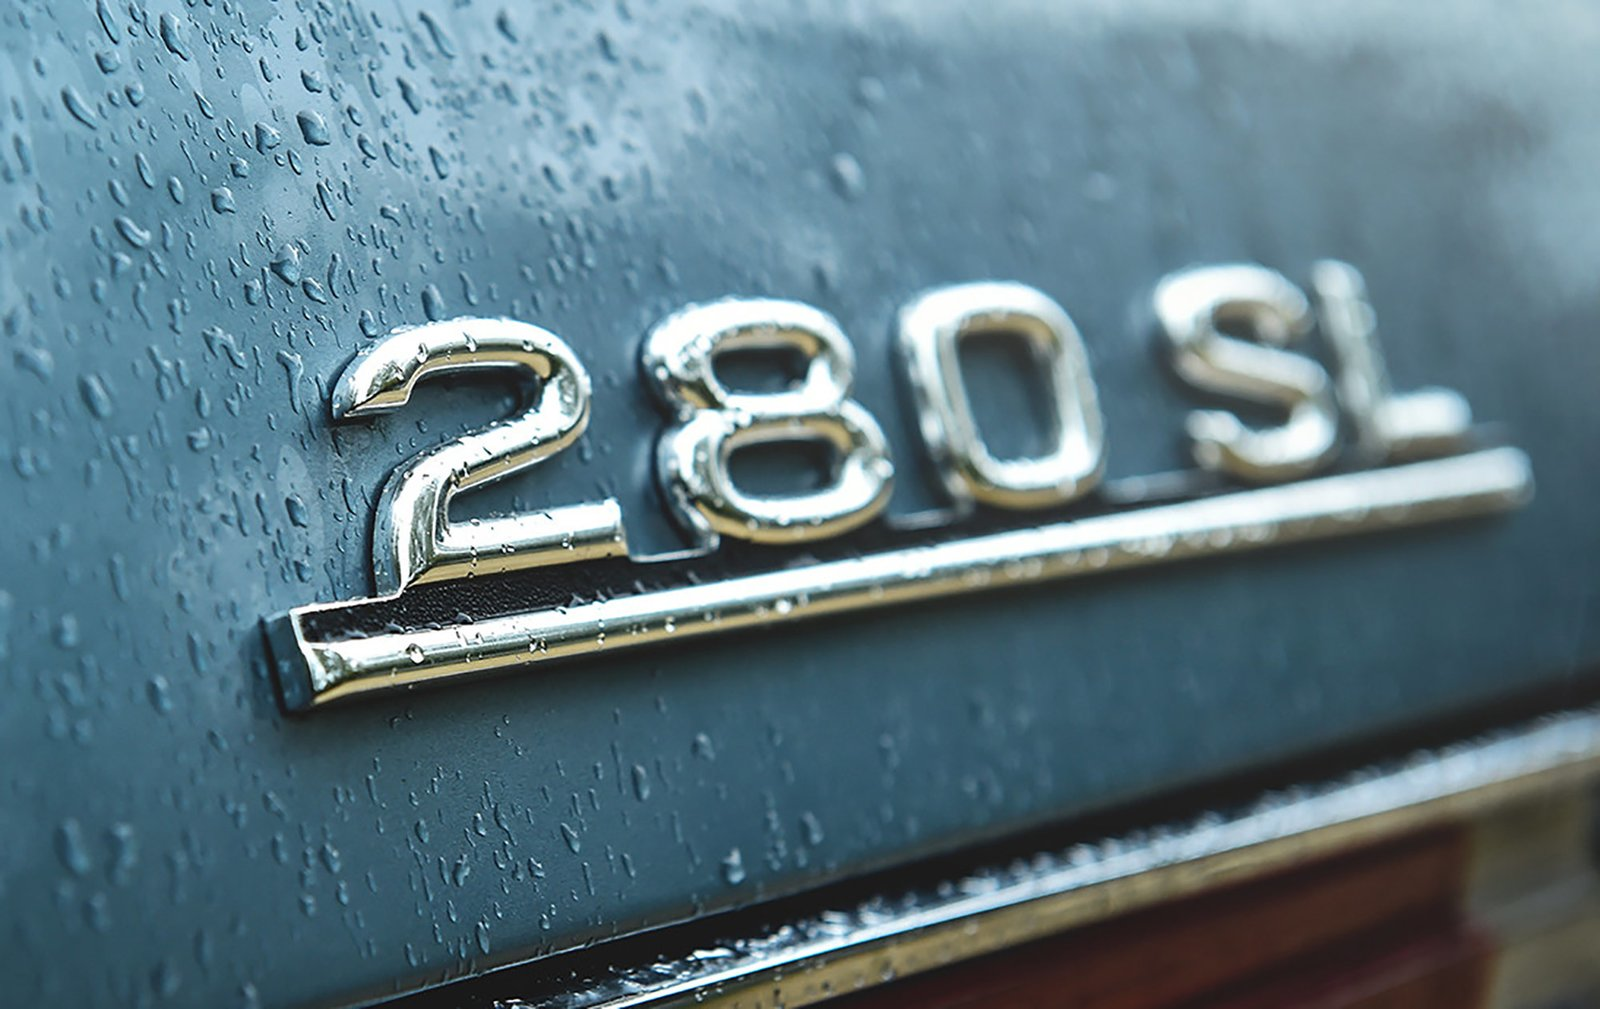 Photo 6 of 6 in Mercedes-Benz Classic Car Travel